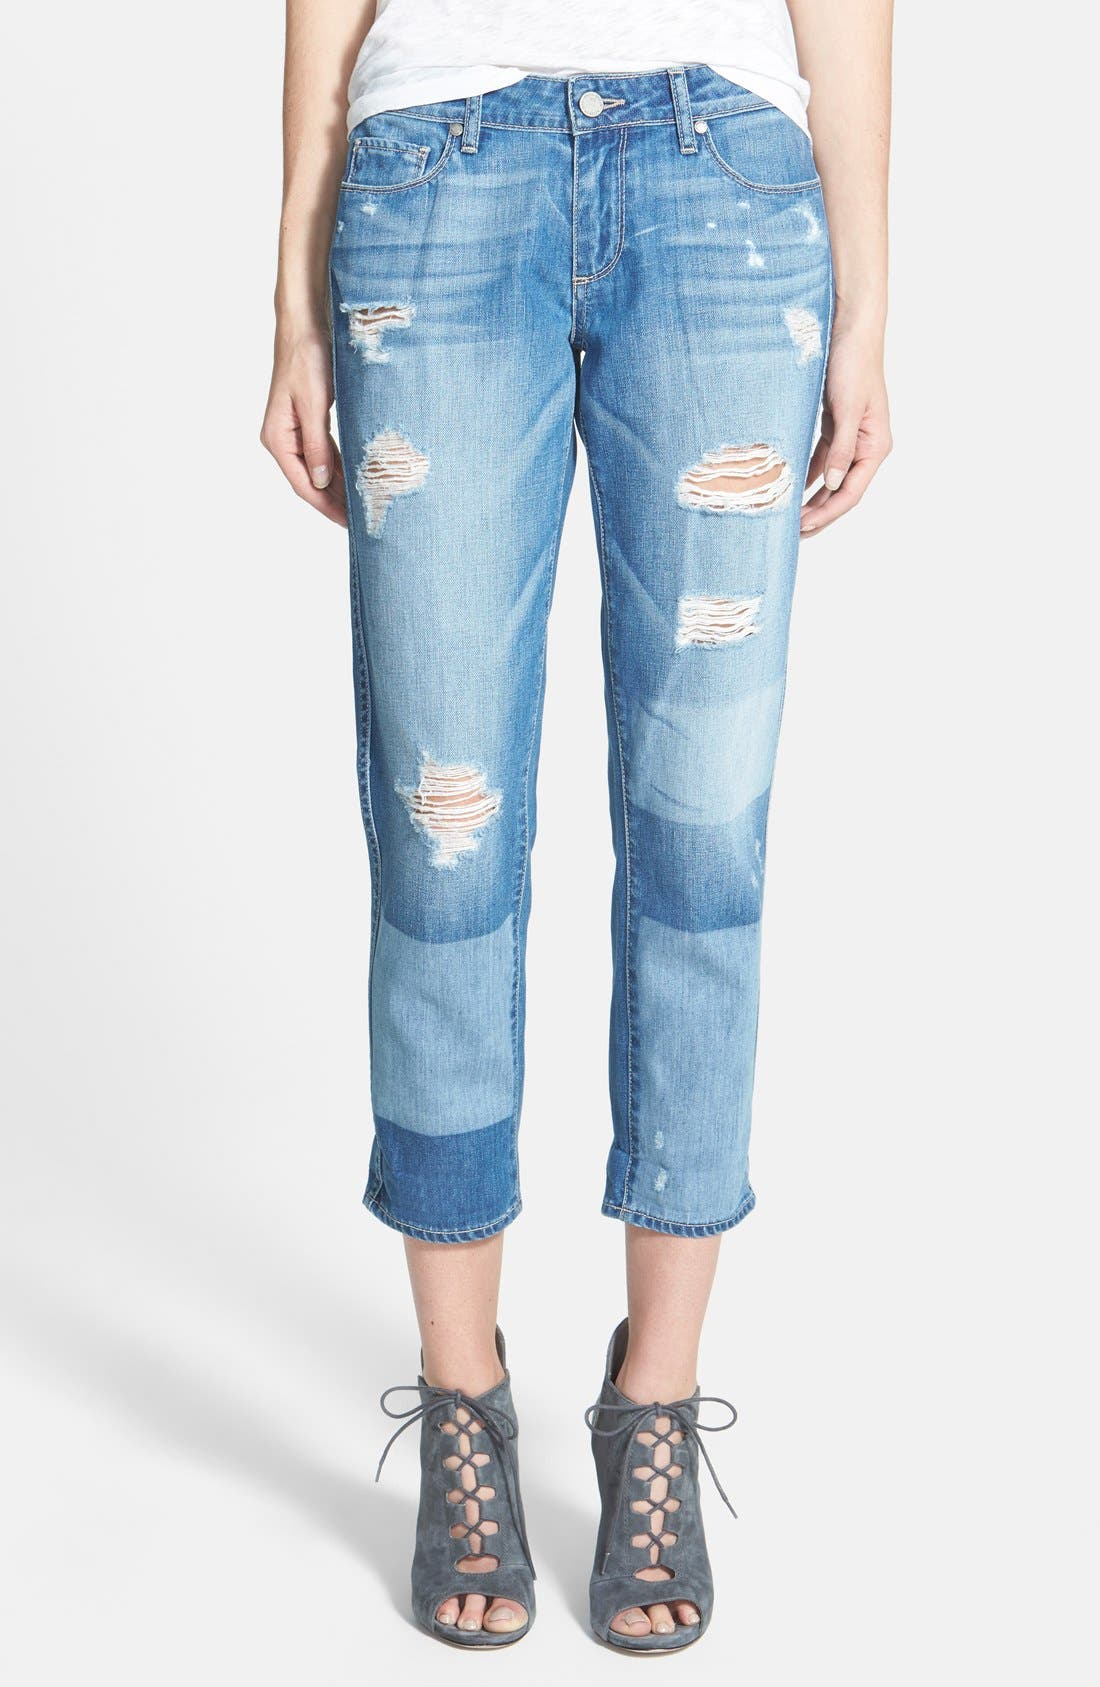 Main Image - Paige Denim 'Jimmy Jimmy' Crop Skinny Boyfriend Jeans (Indigo Ezra Destroyed)